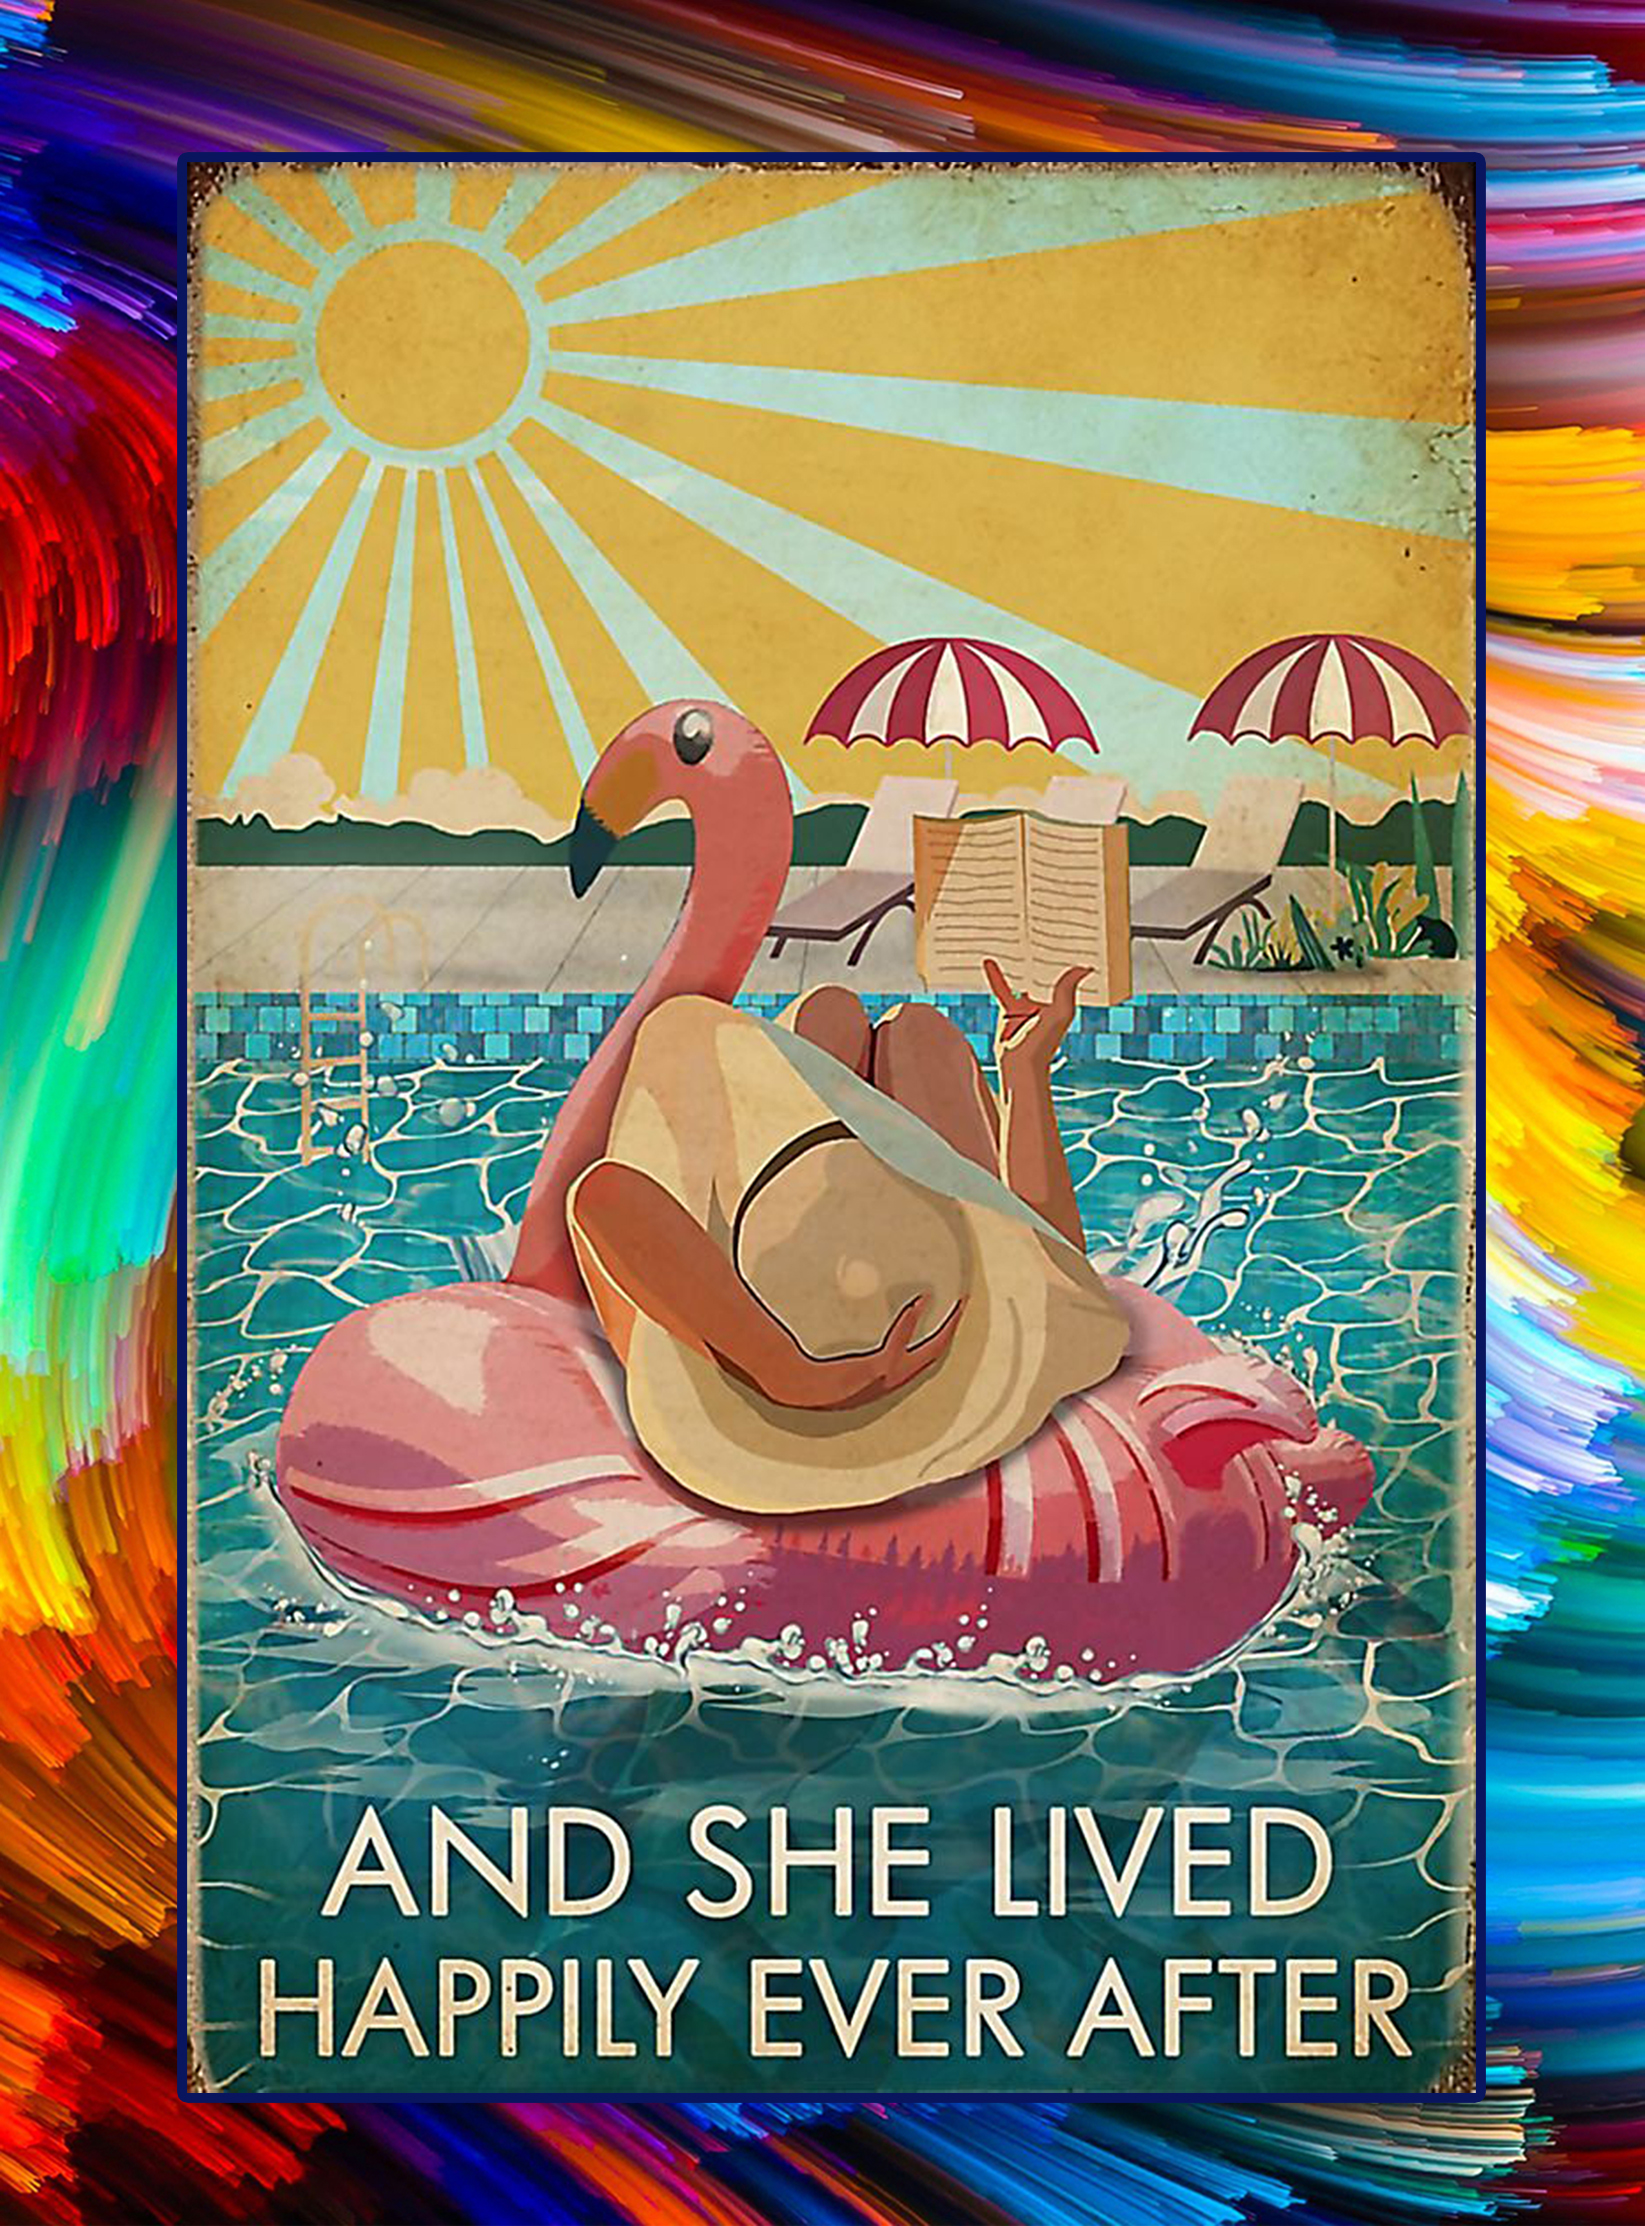 Flamingo book pool and she lived happily ever after poster - A4